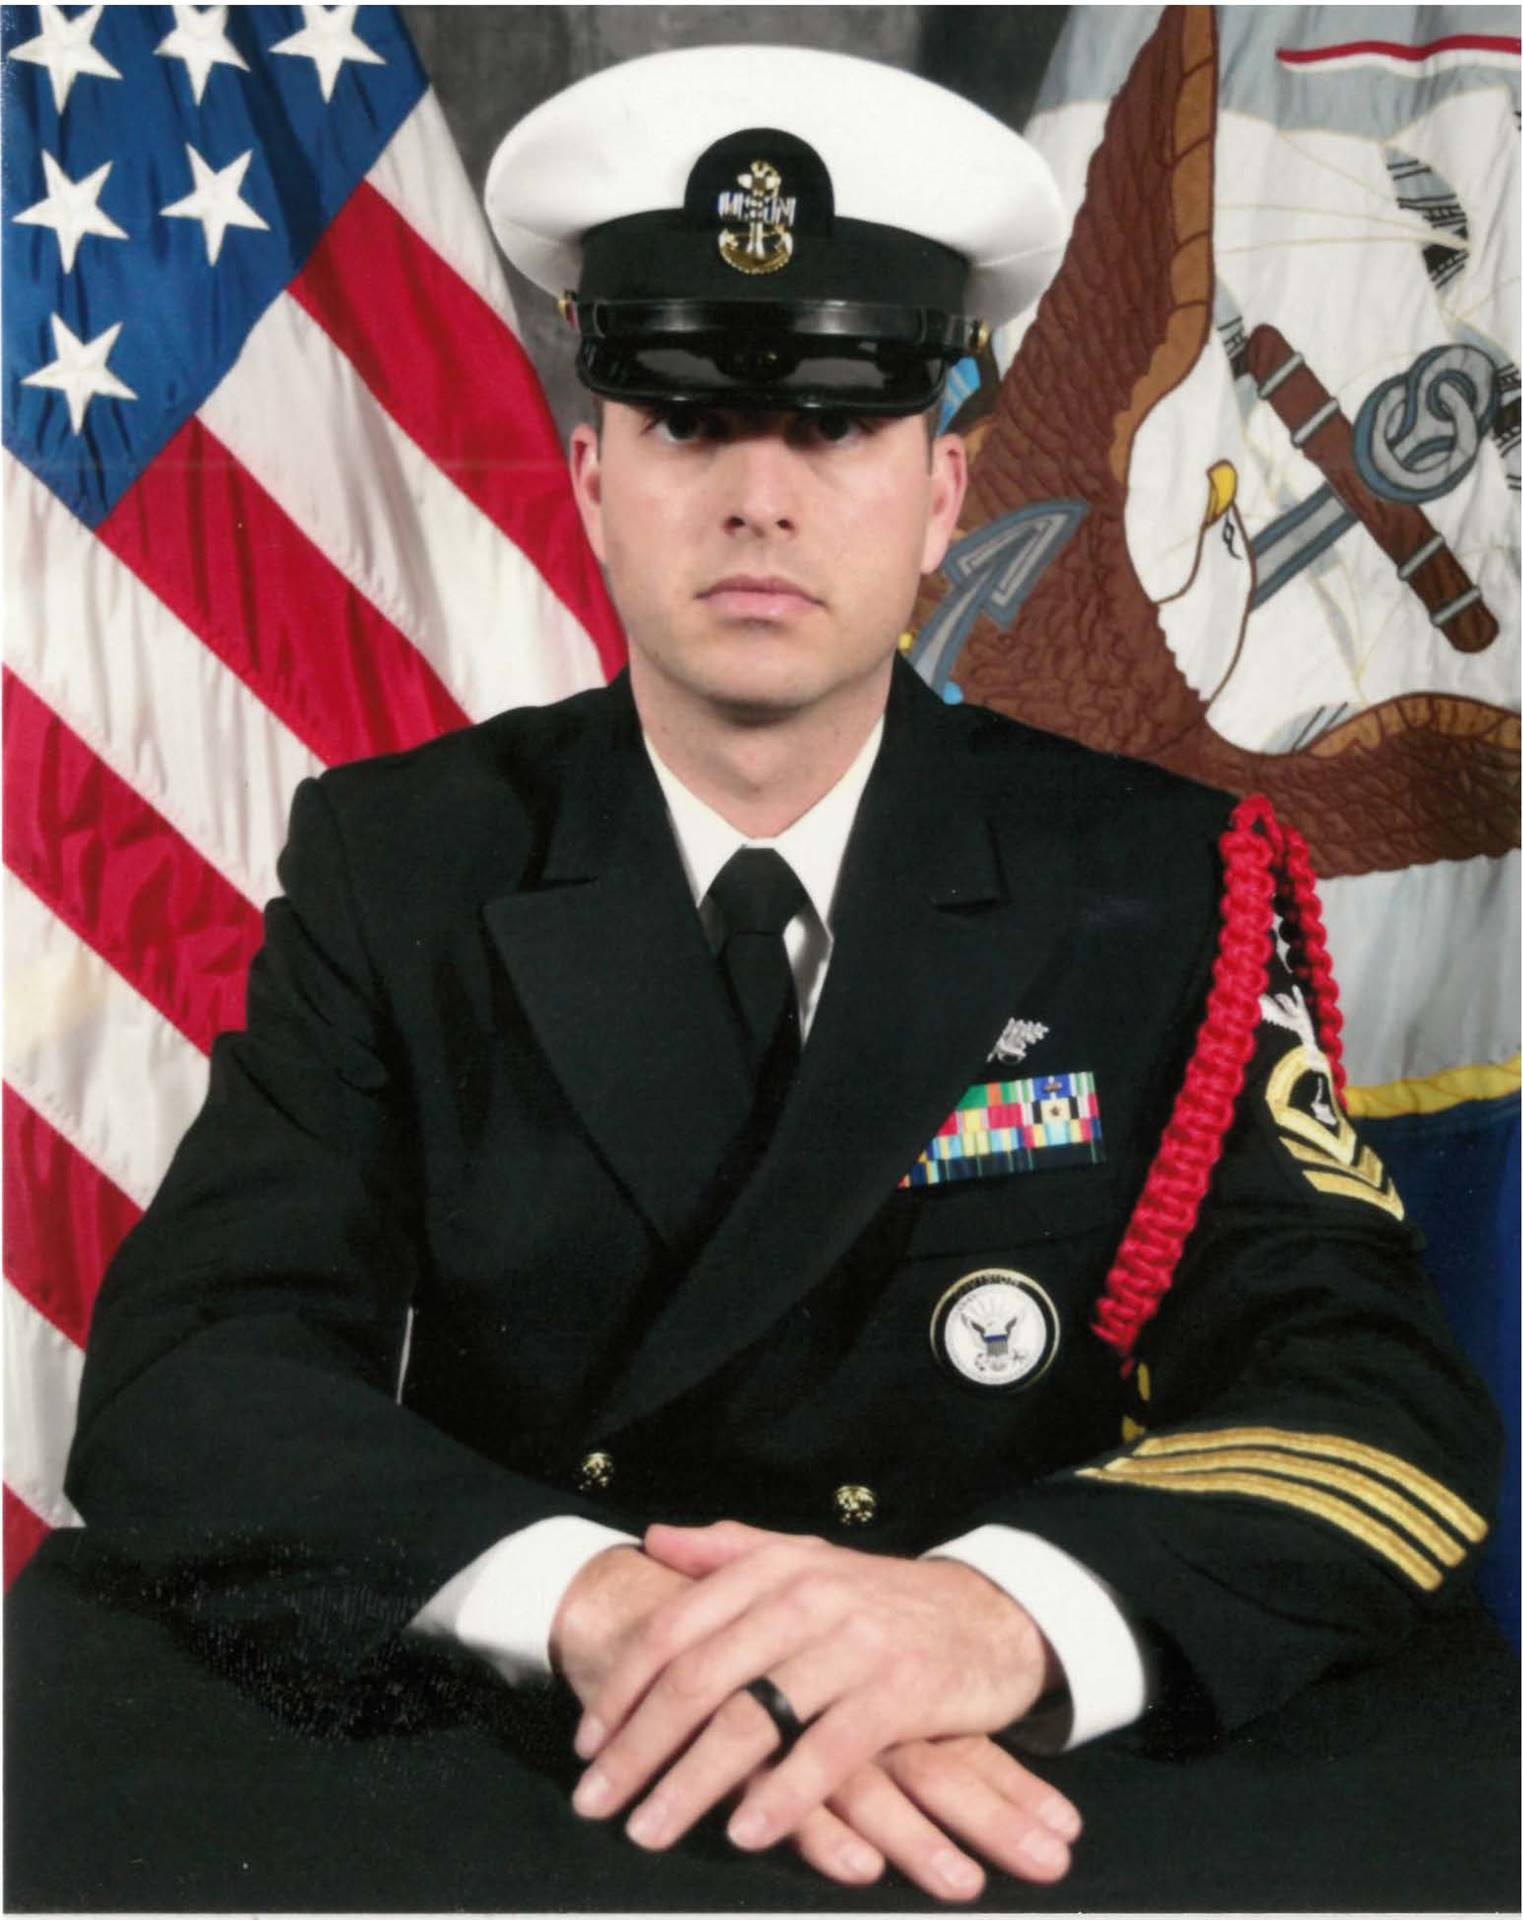 Male alumnus in his Navy uniform